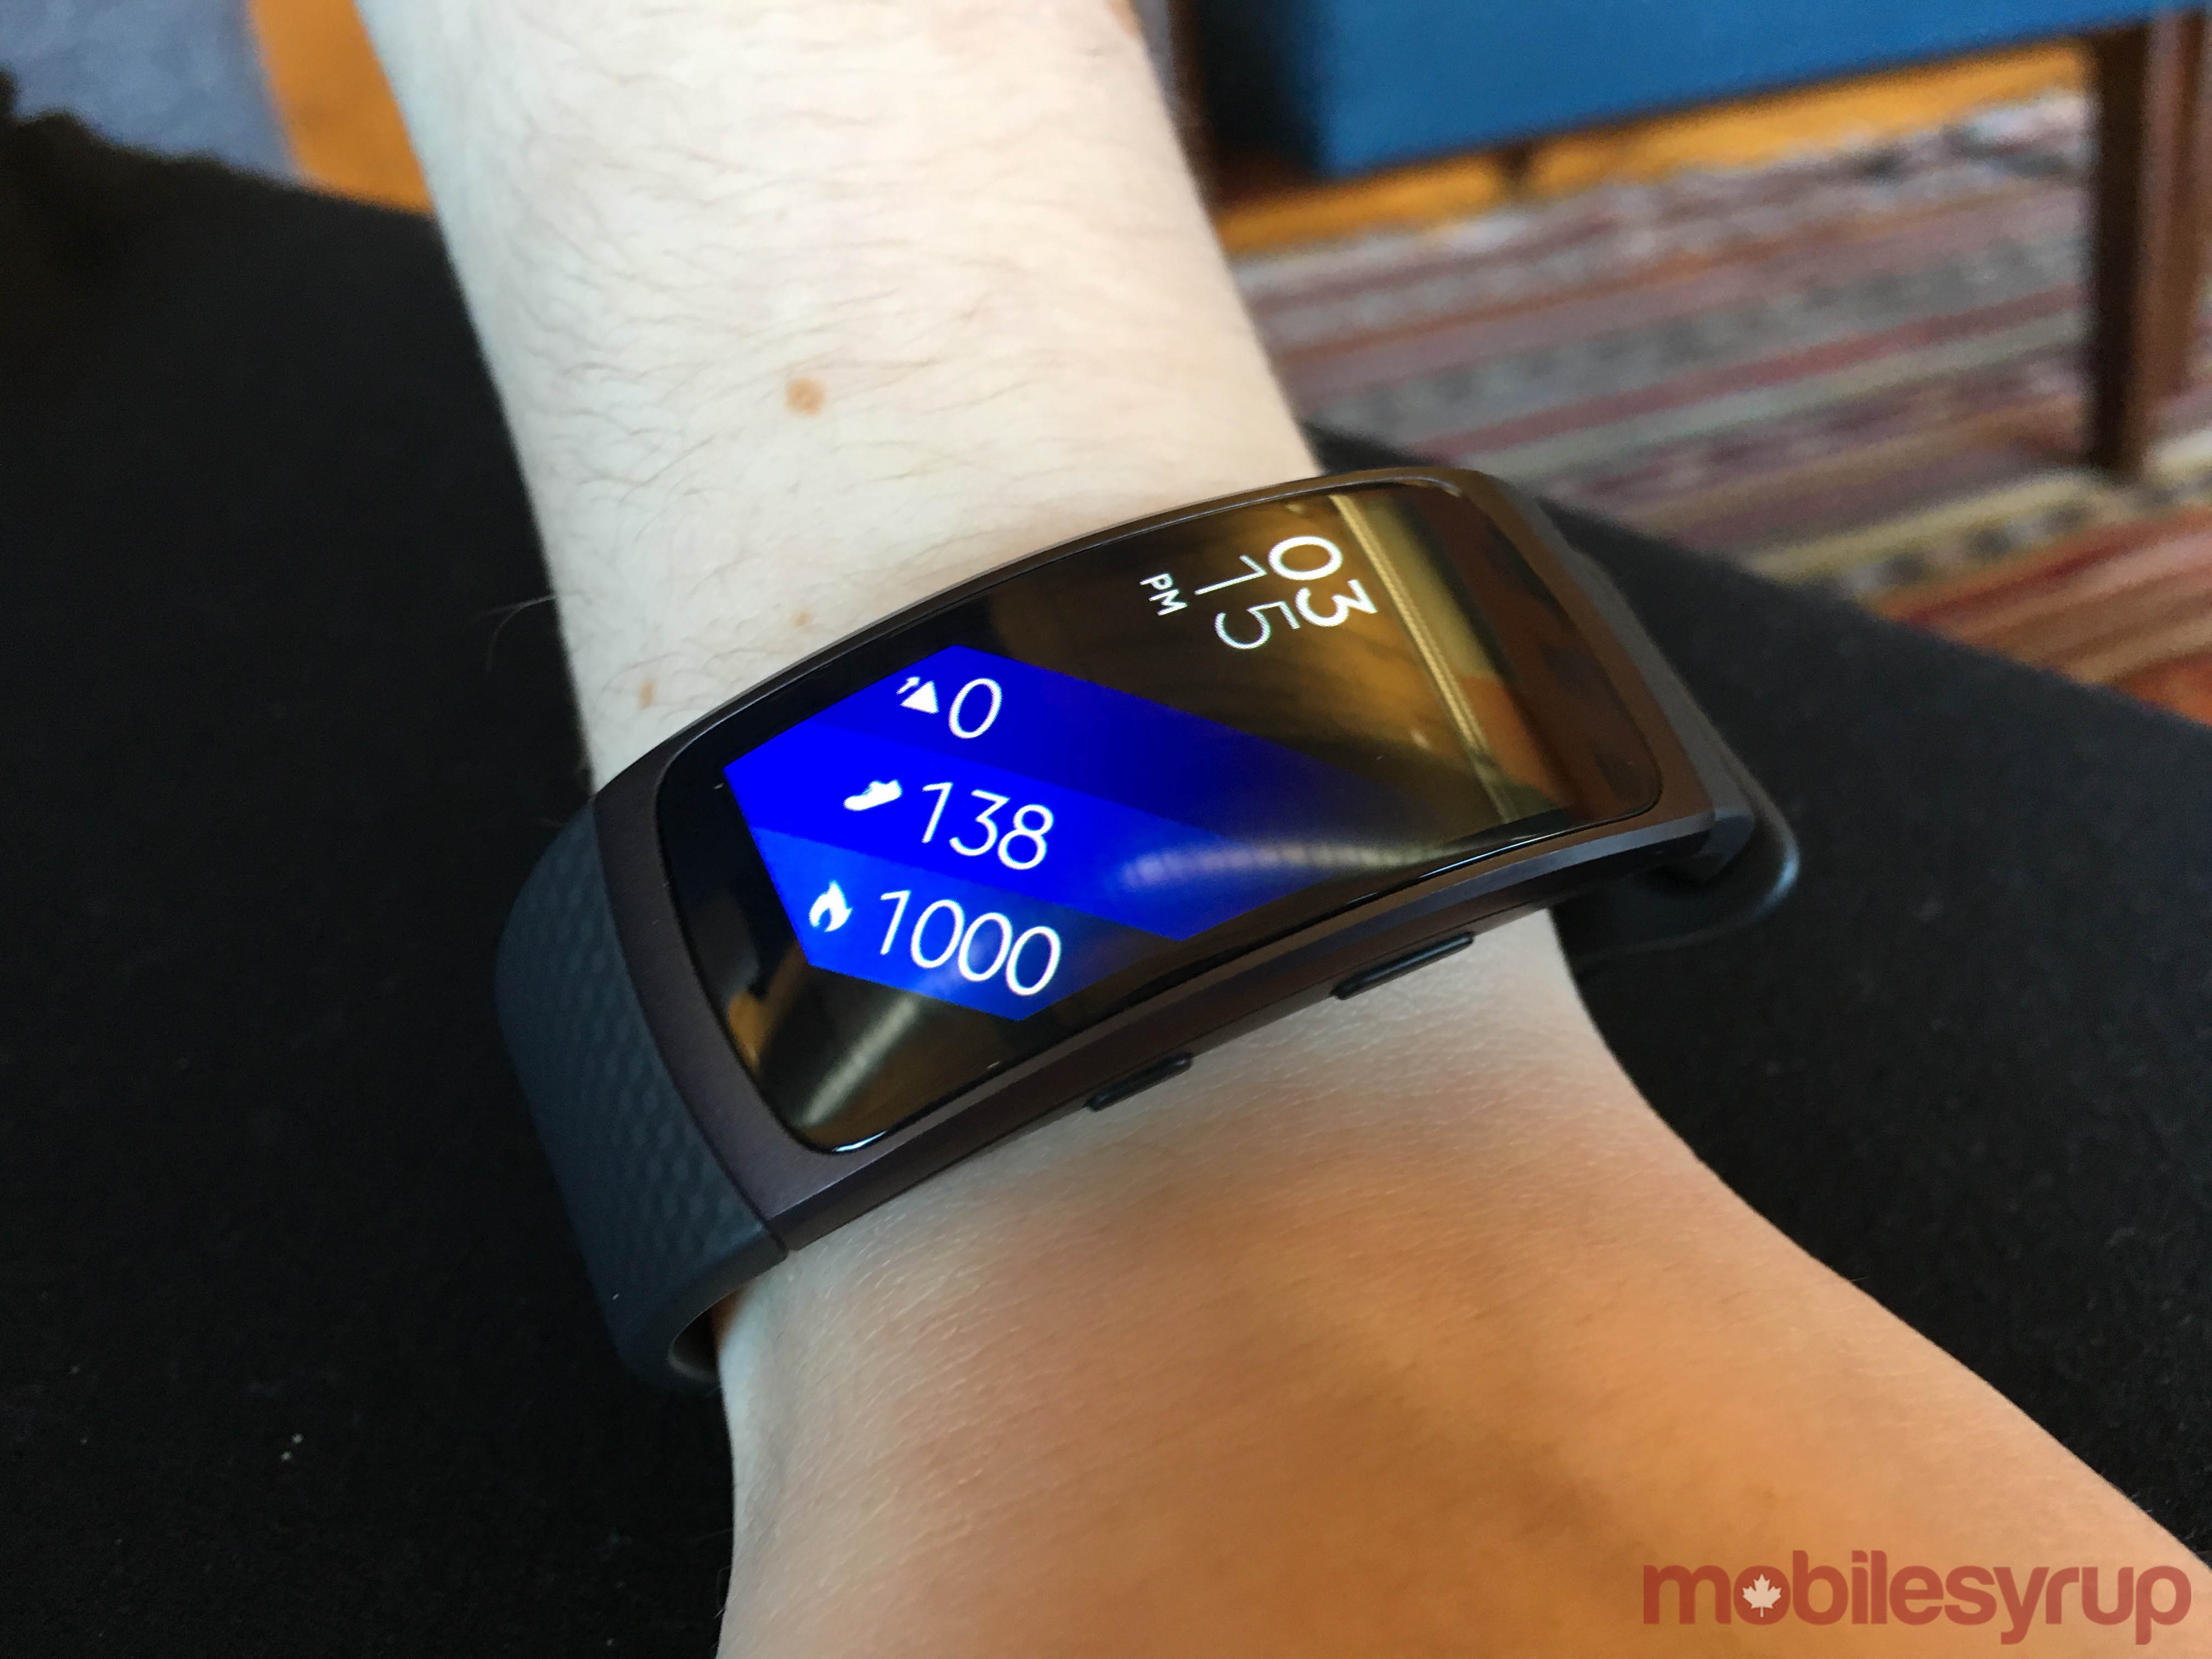 Samsung gear fit 2 gear iconx hands on putting fitness at the top - The Fit2 Which Comes In Blue Black And Pink Is Attractive For A Fitness Tracker As Long As You Choose Correctly Between The Two Sizes Small For Wrists